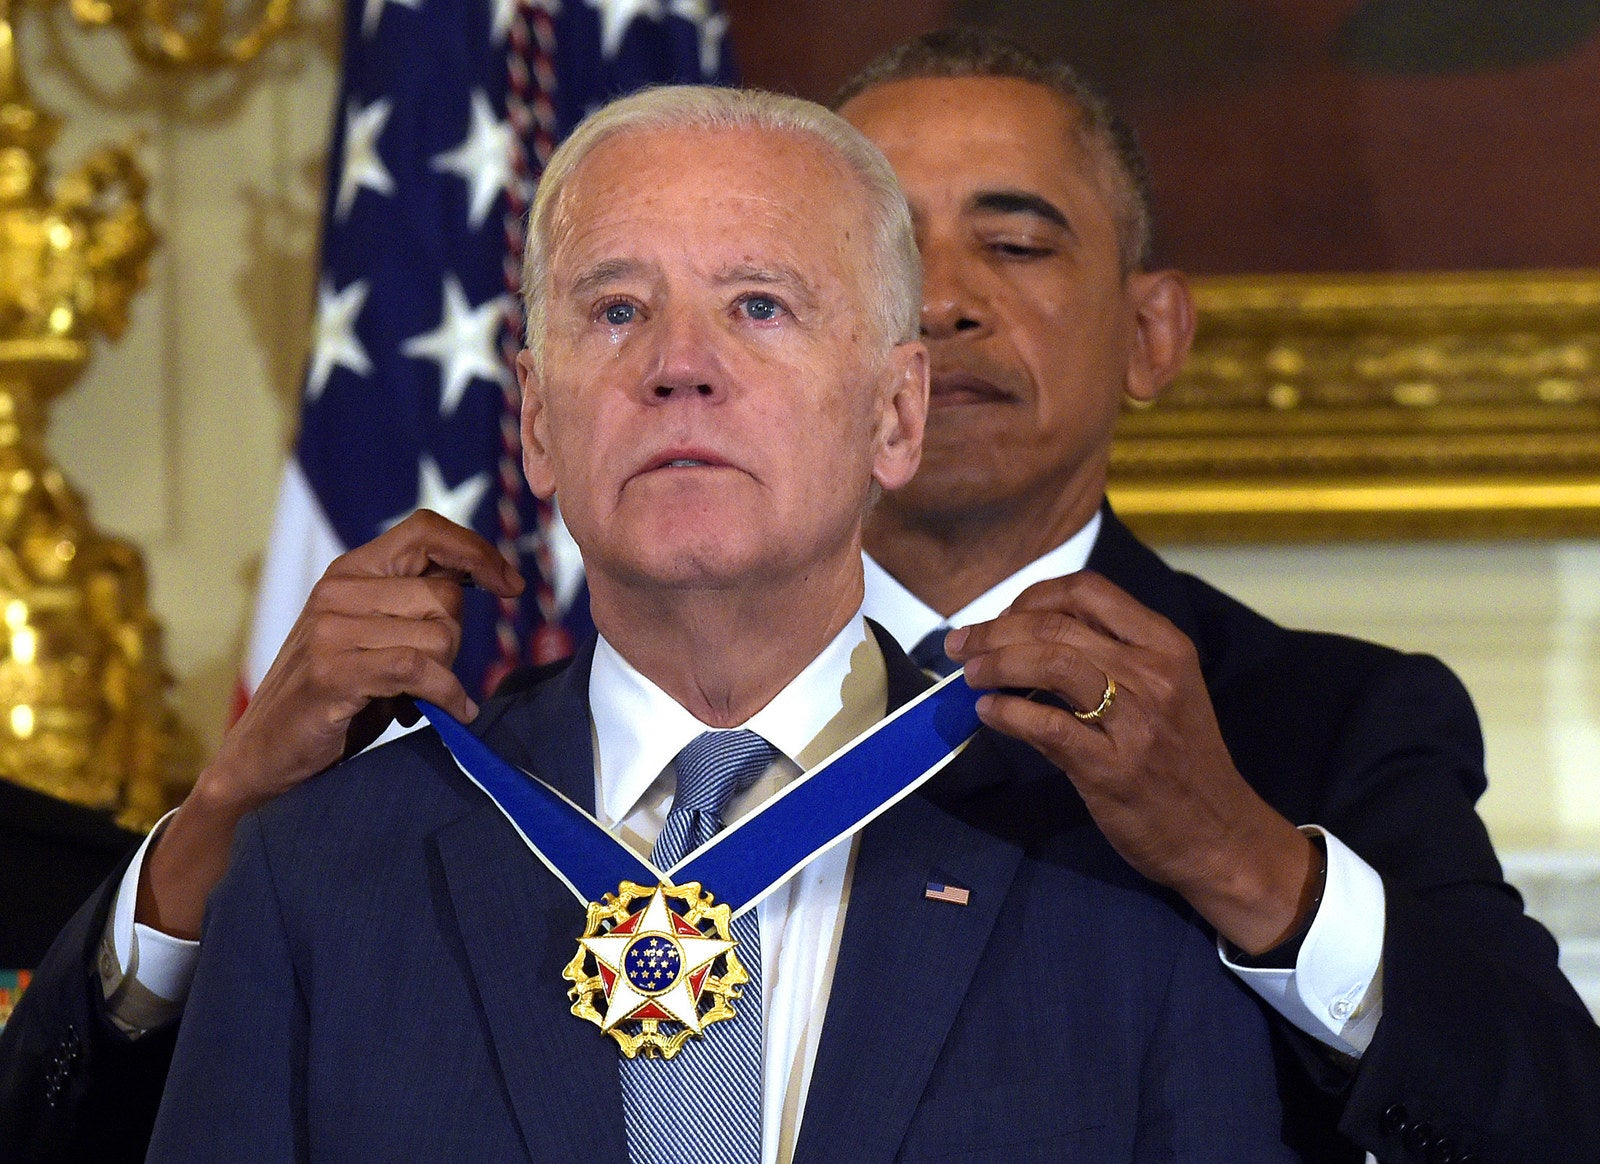 President Barack Obama presents Vice President Joe Biden with the Presidential Medal of Freedom during a ceremony in the State Dining Room of the White House on Jan. 12.